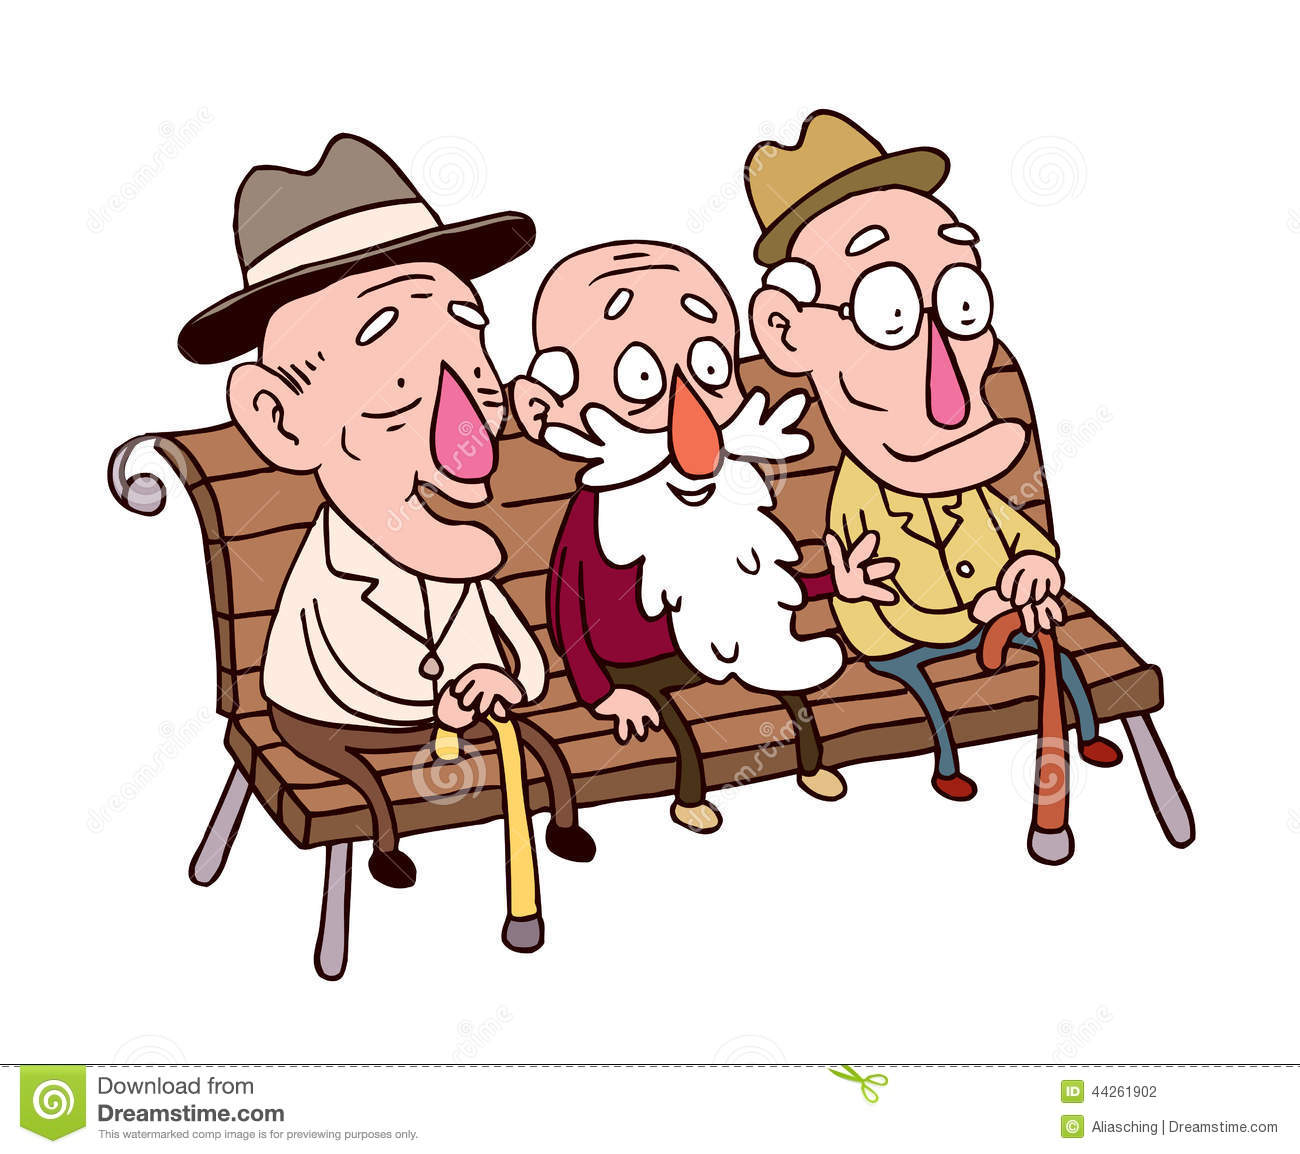 three old friends cartoon illustration mr no pr no 2 655 2